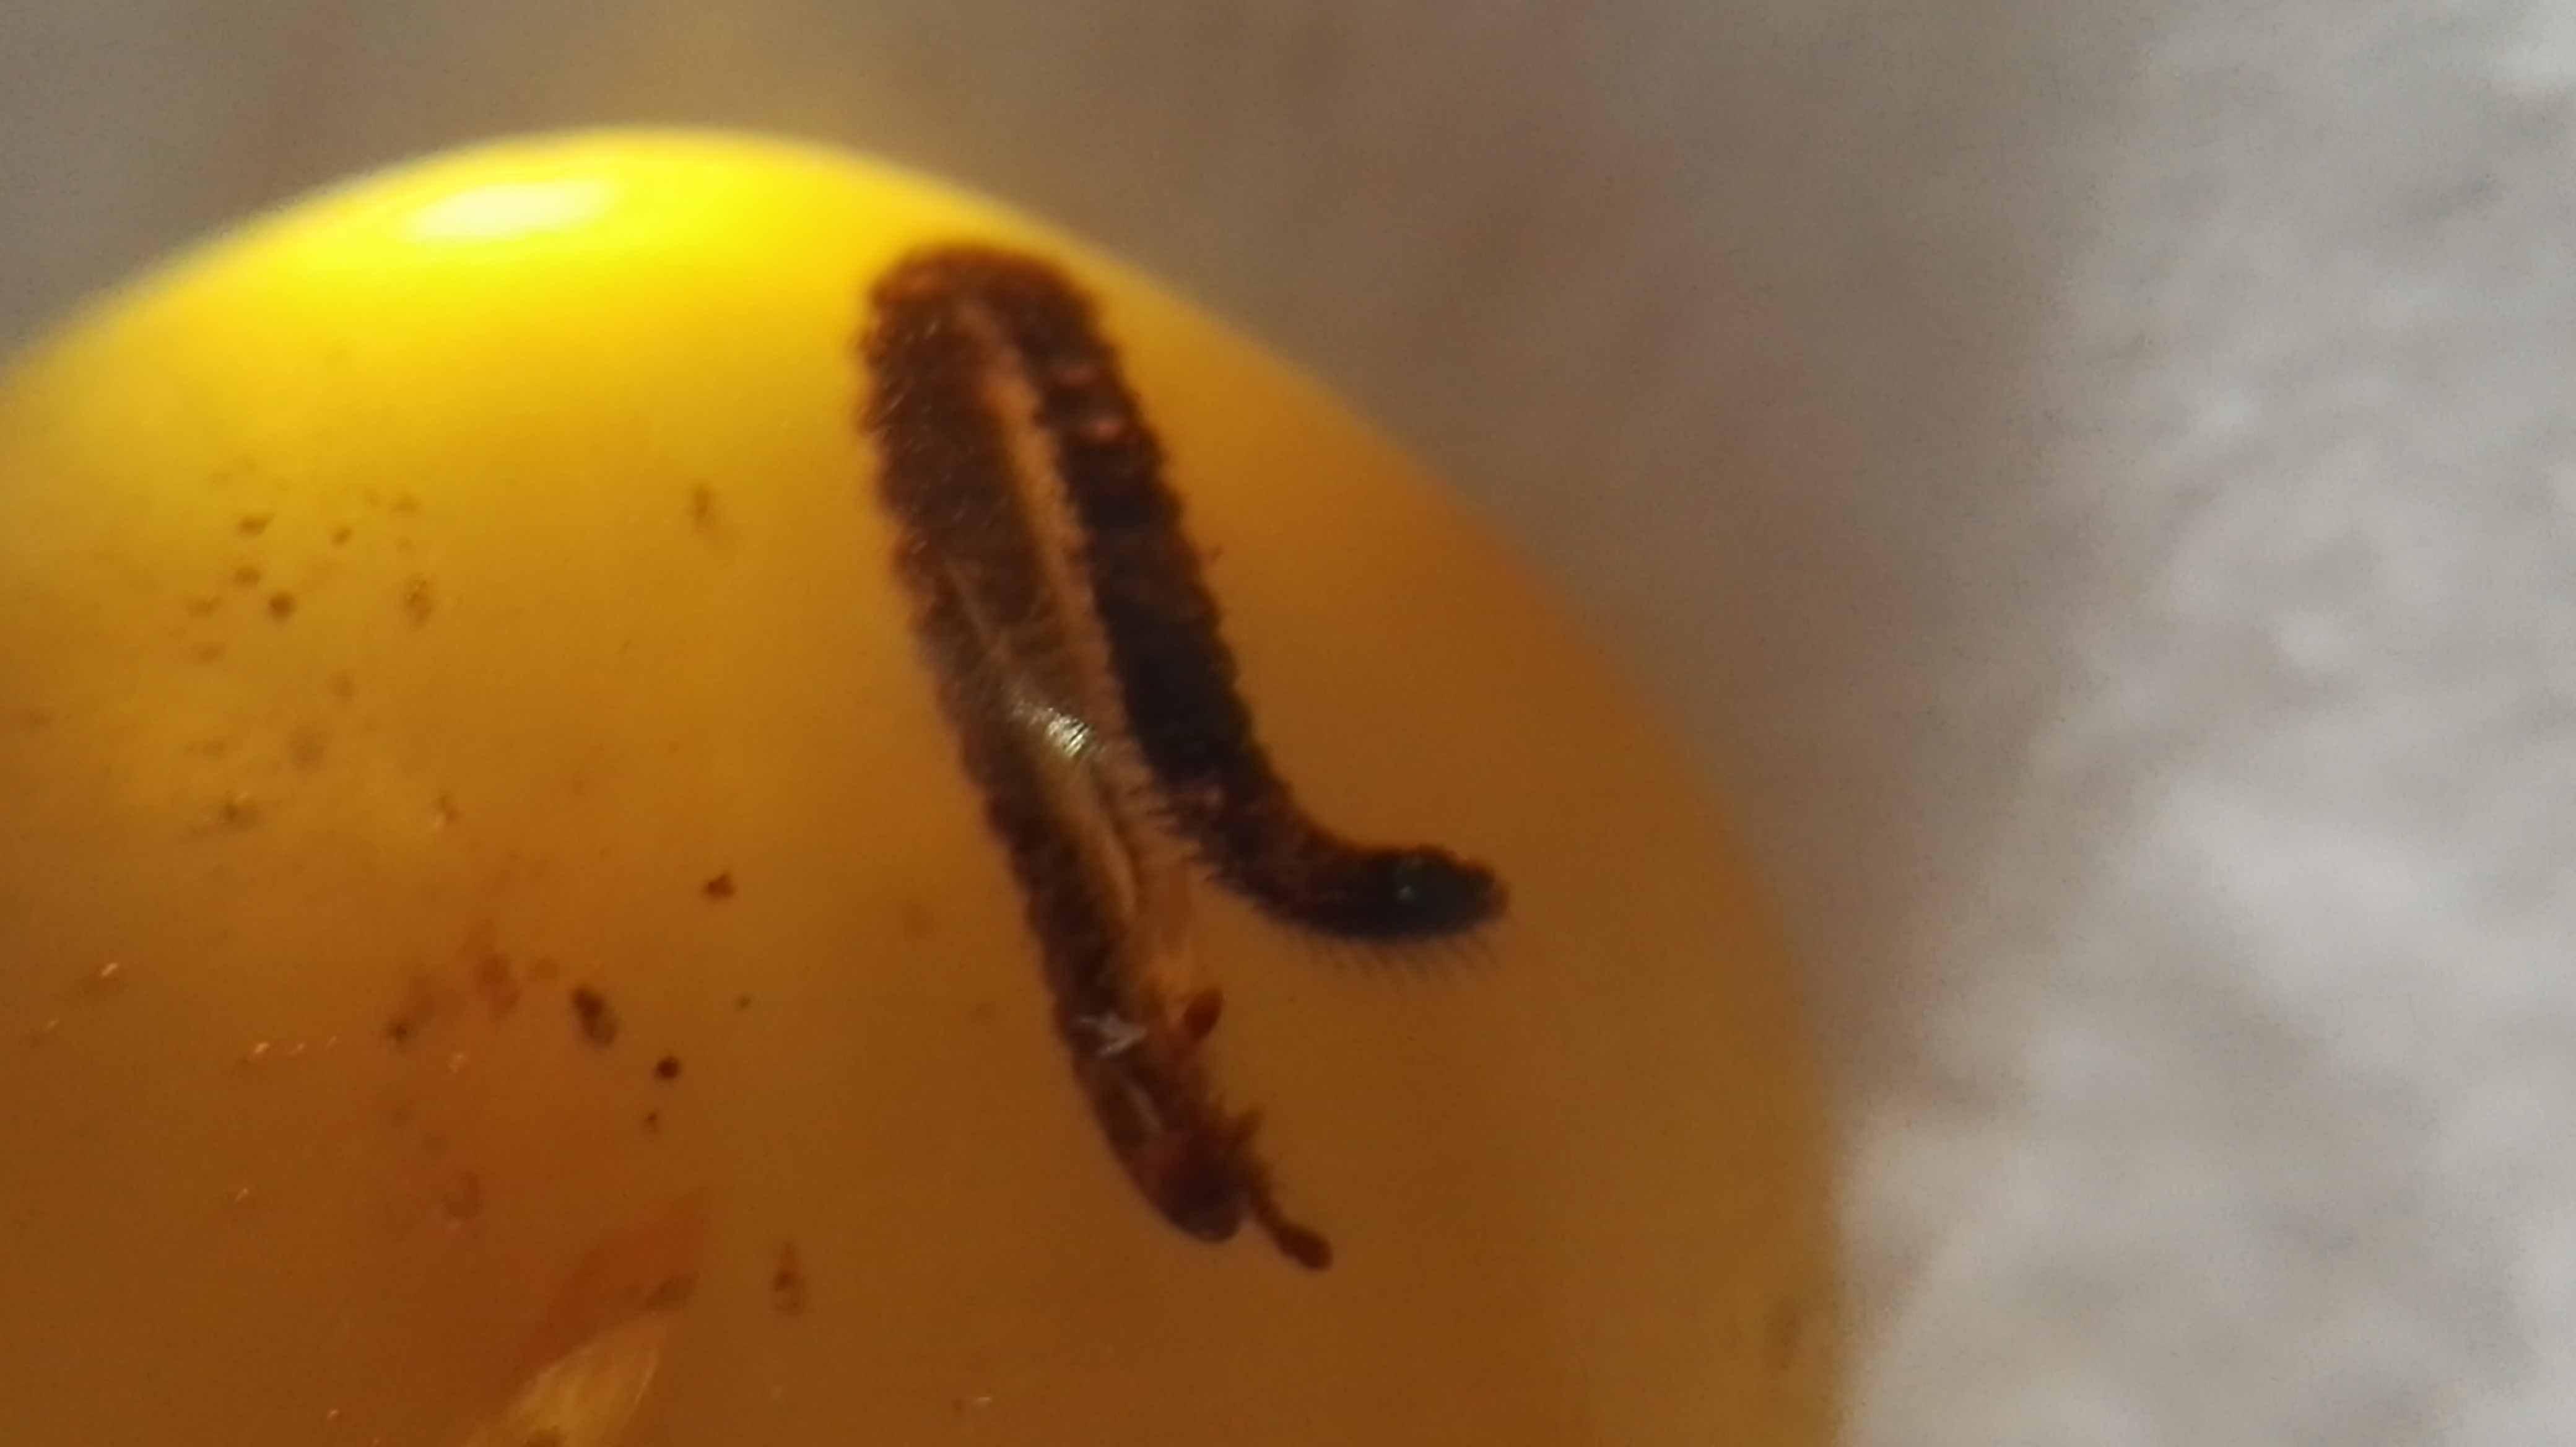 Millipedes in amber